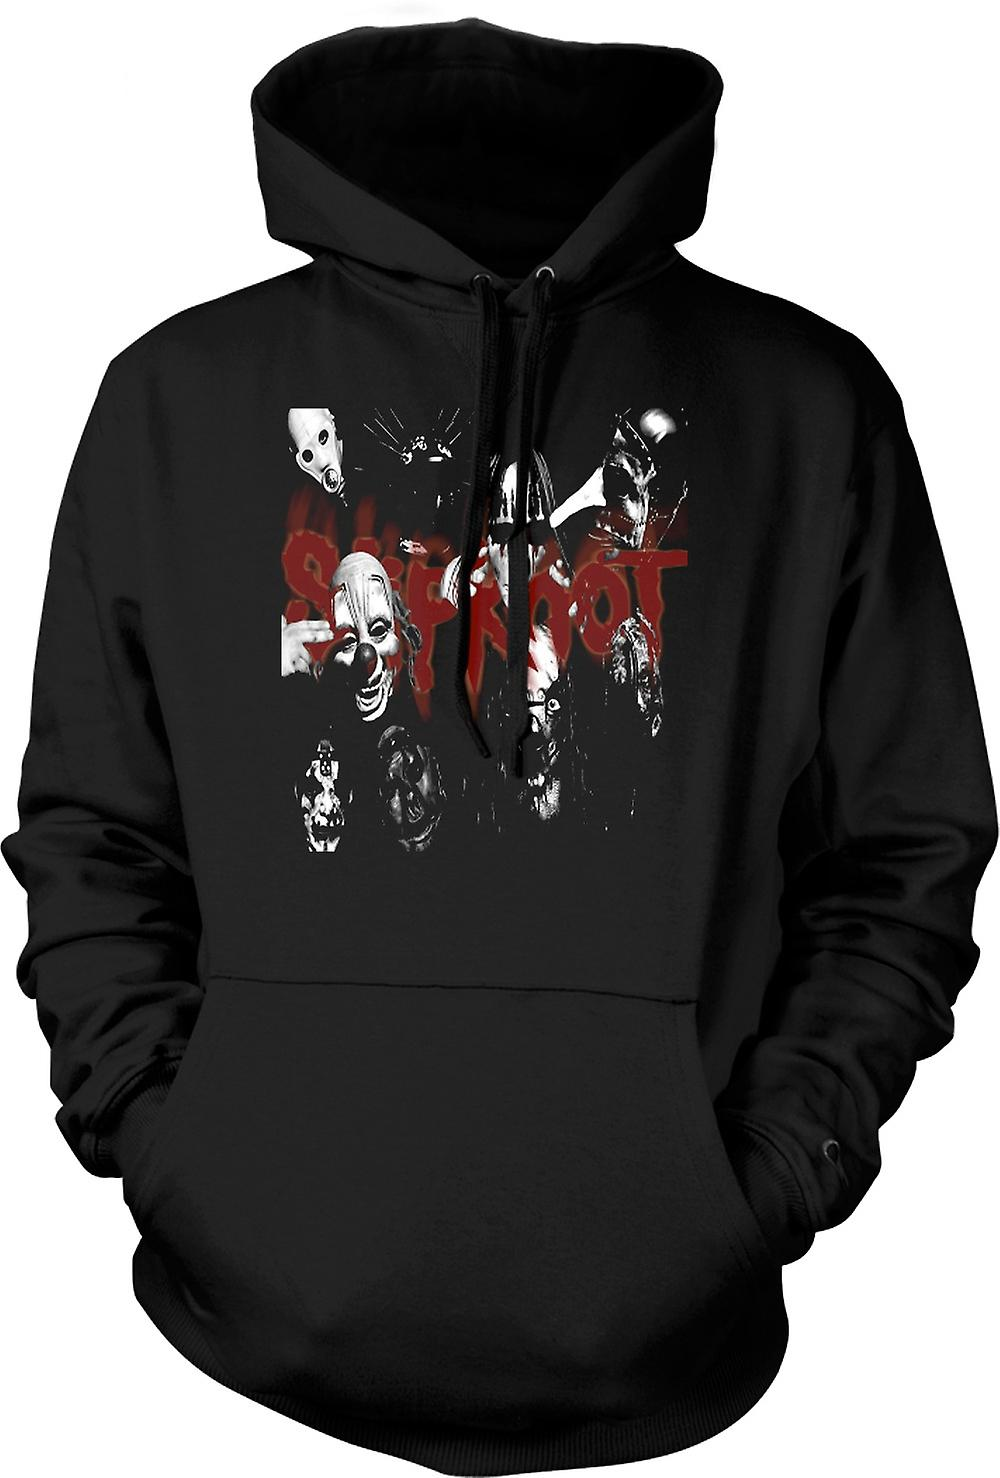 Kinder-Kapuzenshirt - Slipknot - Heavy Metal Band